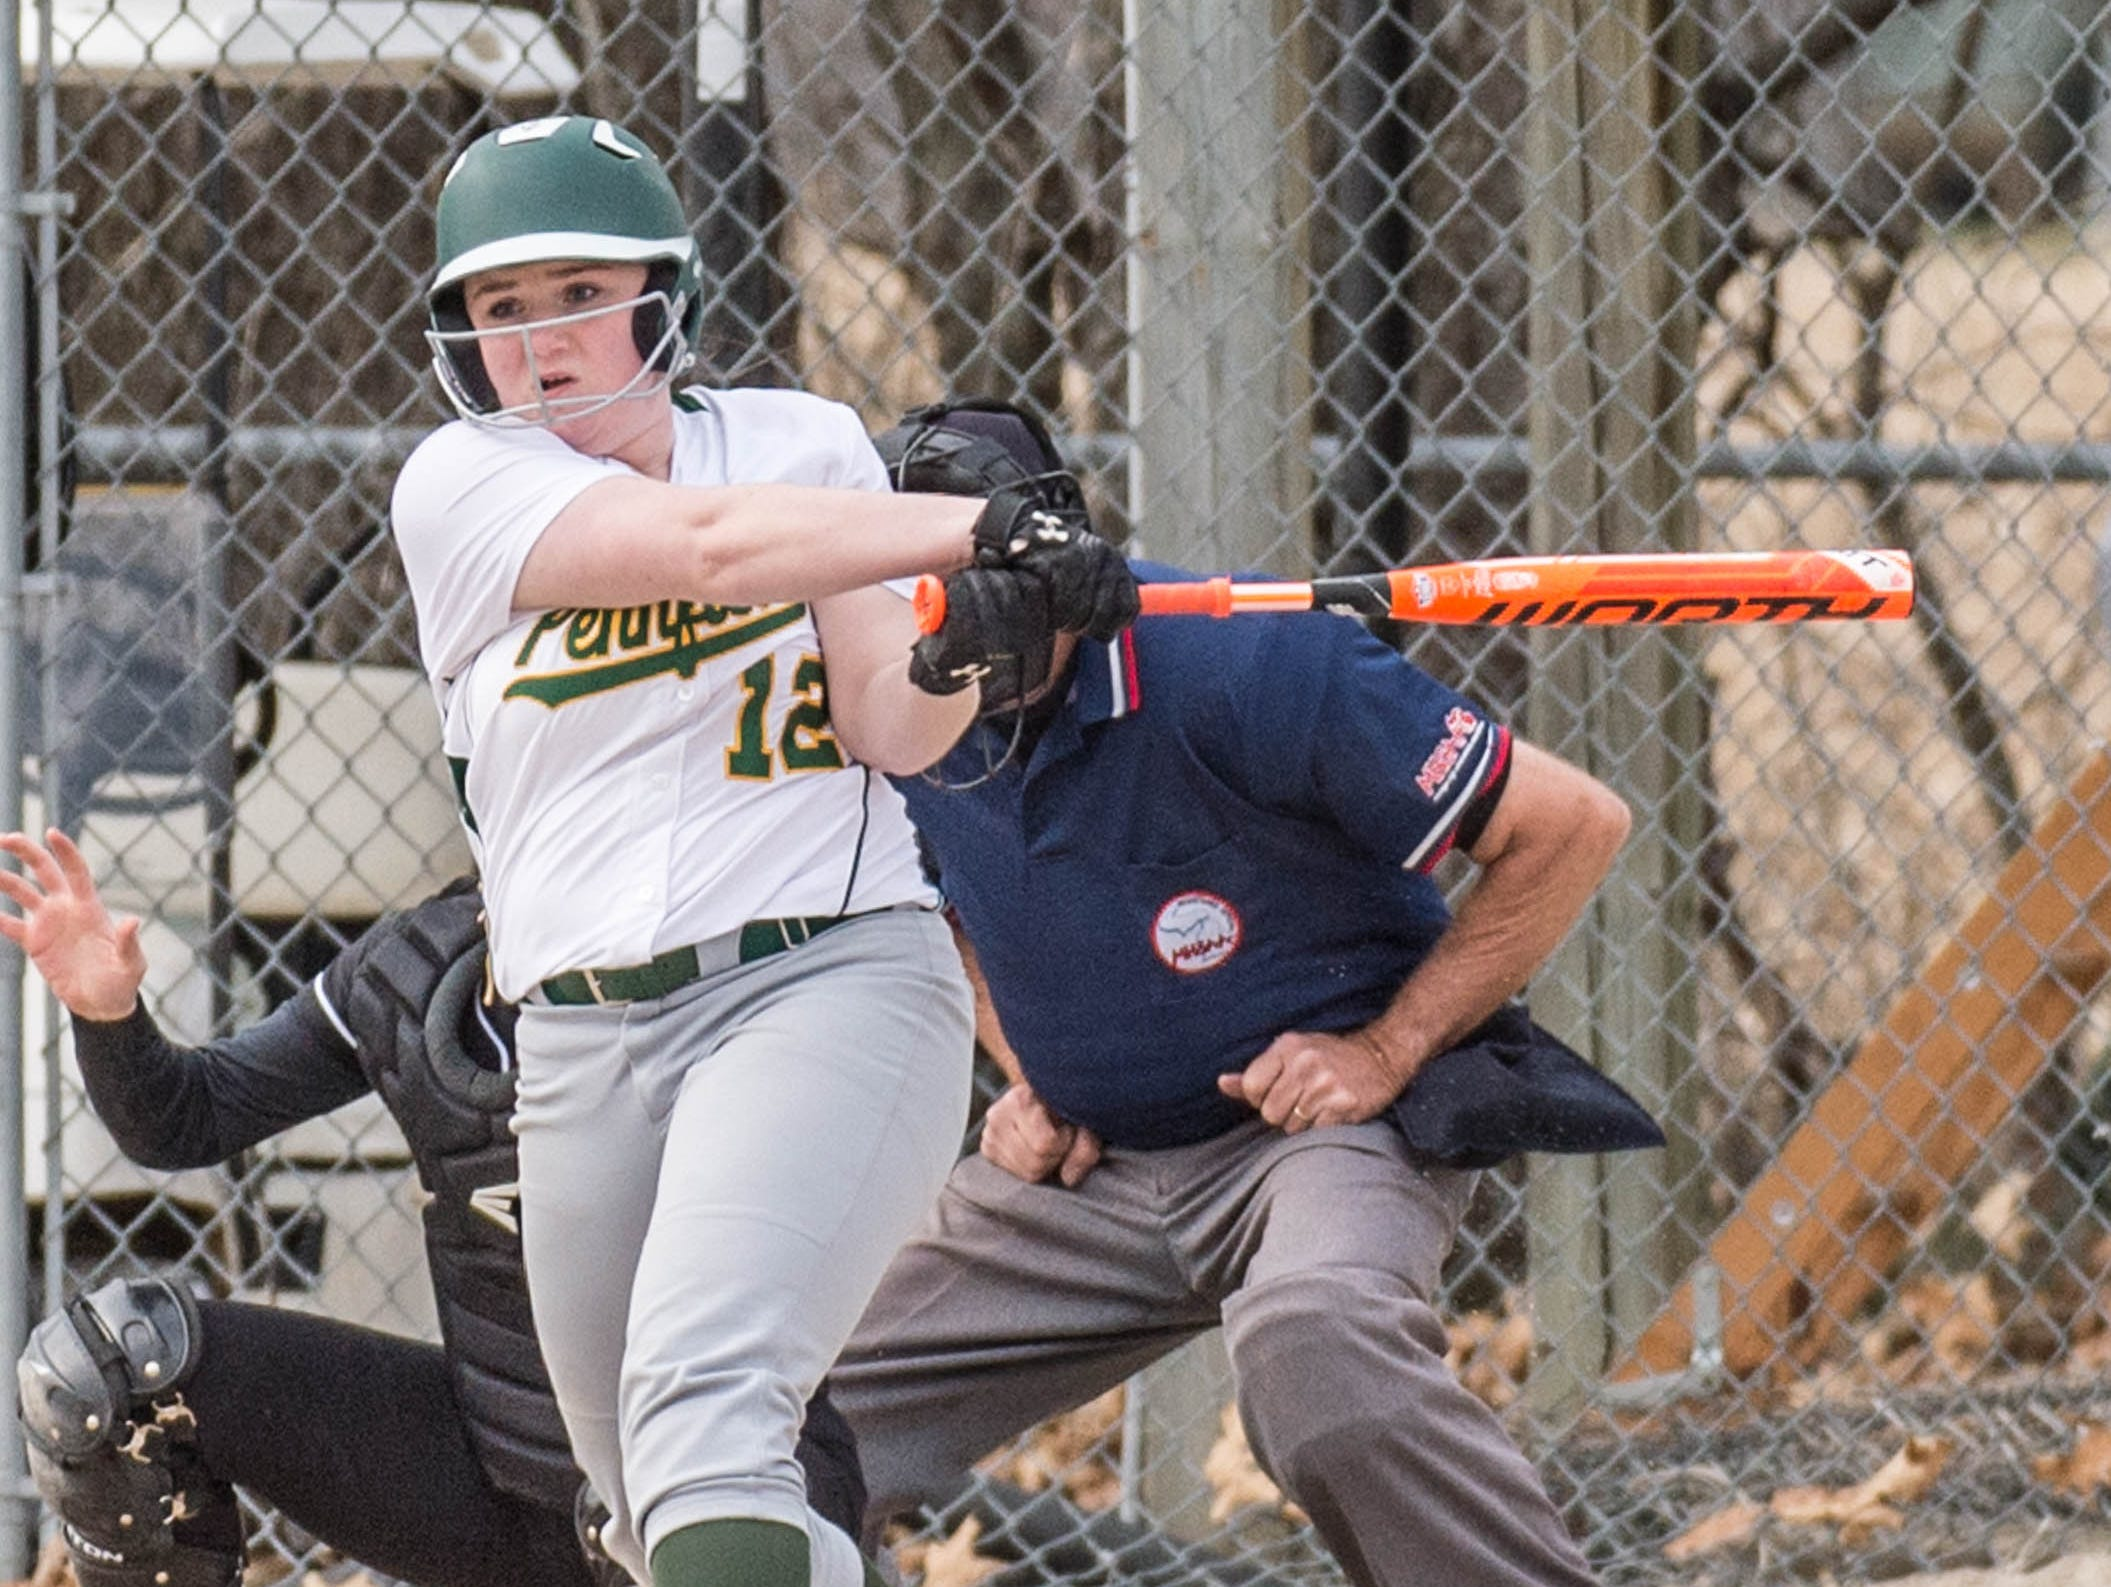 Pennfield's Kaylee Clothier (12) at bat during a recent game against Lakeview.